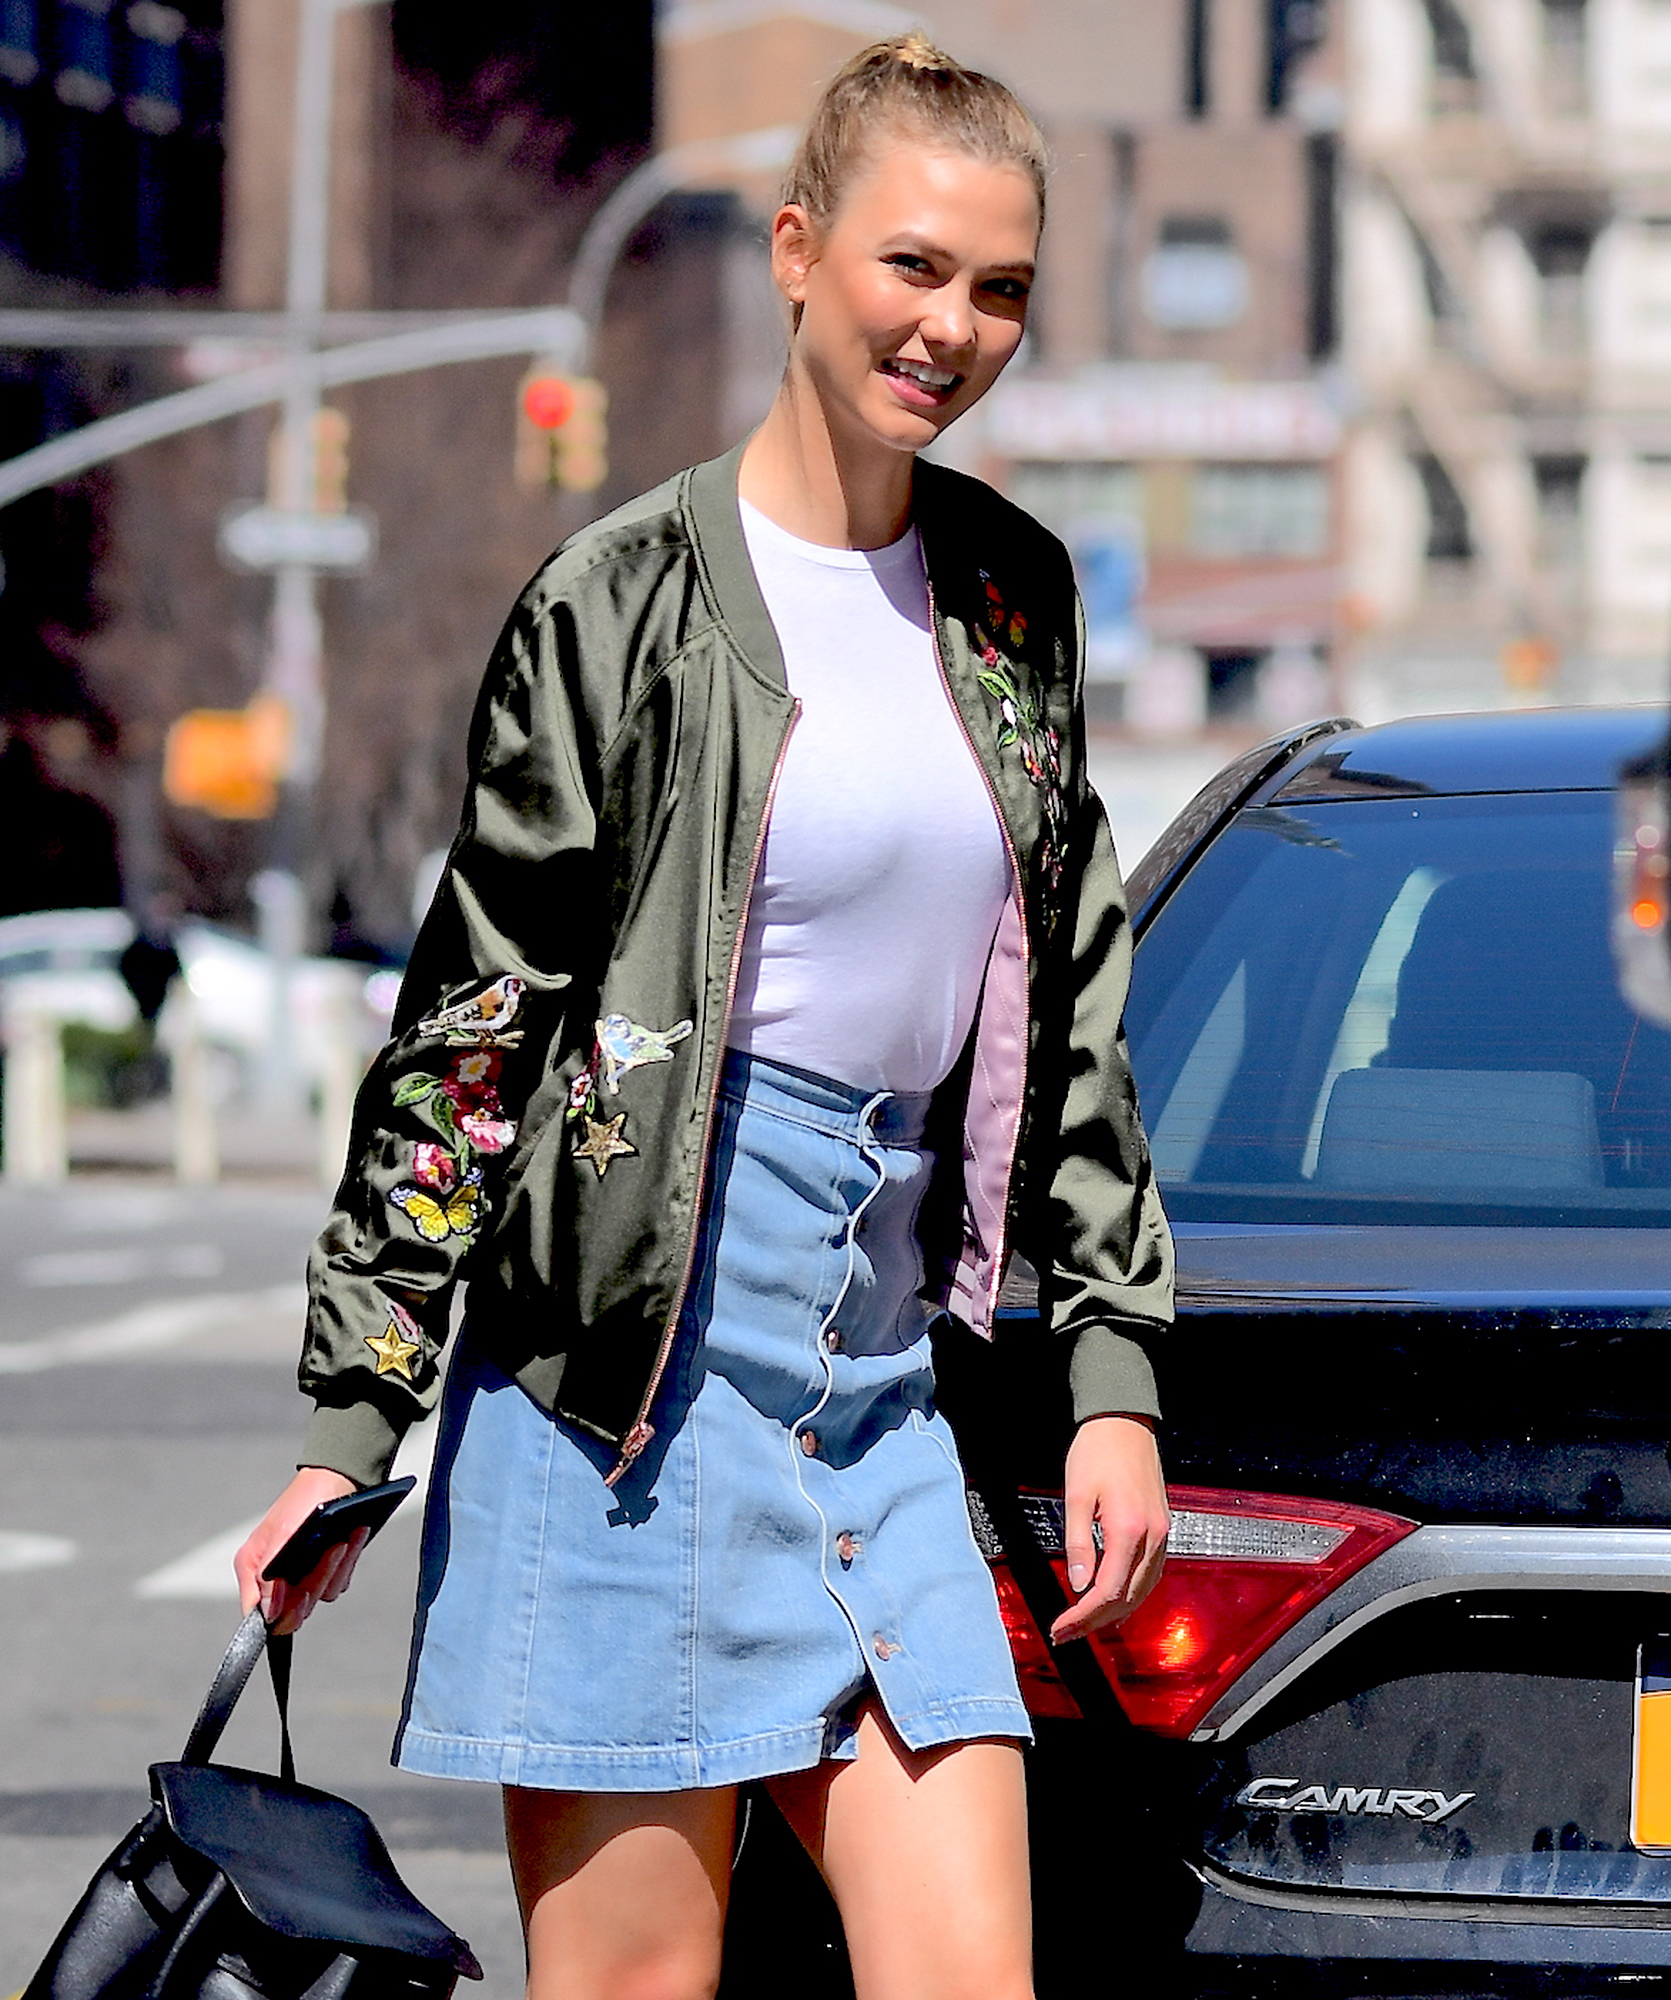 EXCLUSIVE: Karlie Kloss Wears Denim Skirt as she Visits the Express Store in Soho to see her New Collection